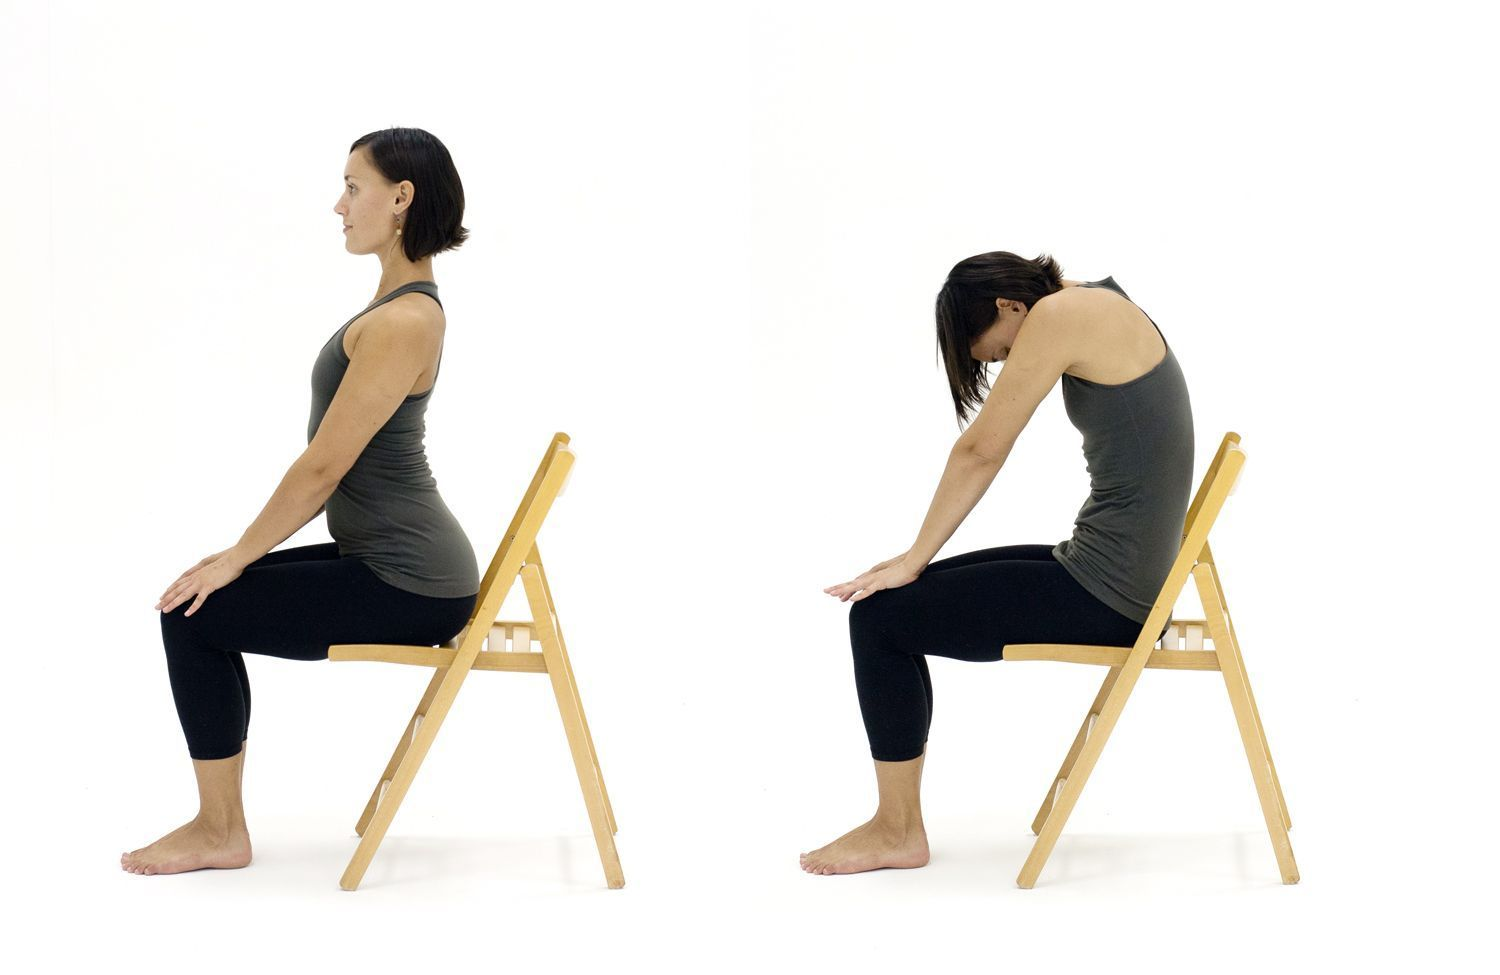 Chair exercises for seniors - These 10 Chair Yoga Poses Are Adaptations Of Traditional Poses To Make Yoga More Accessible For